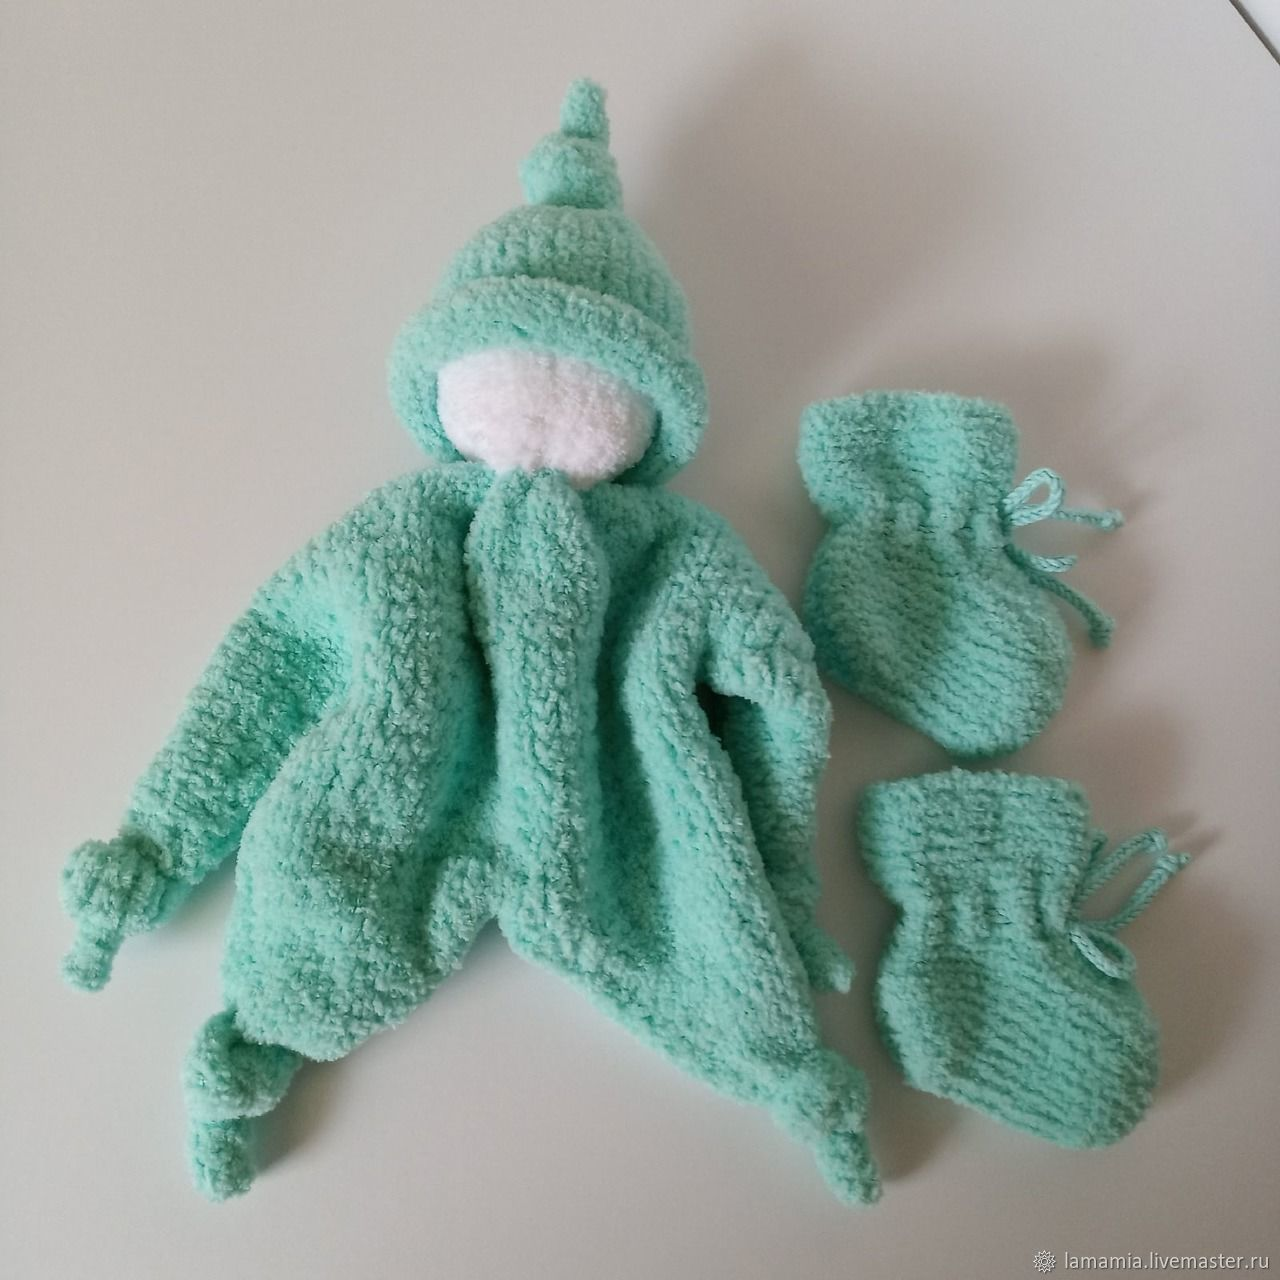 Comfort Booties Toy, Gift for newborn, Omsk,  Фото №1